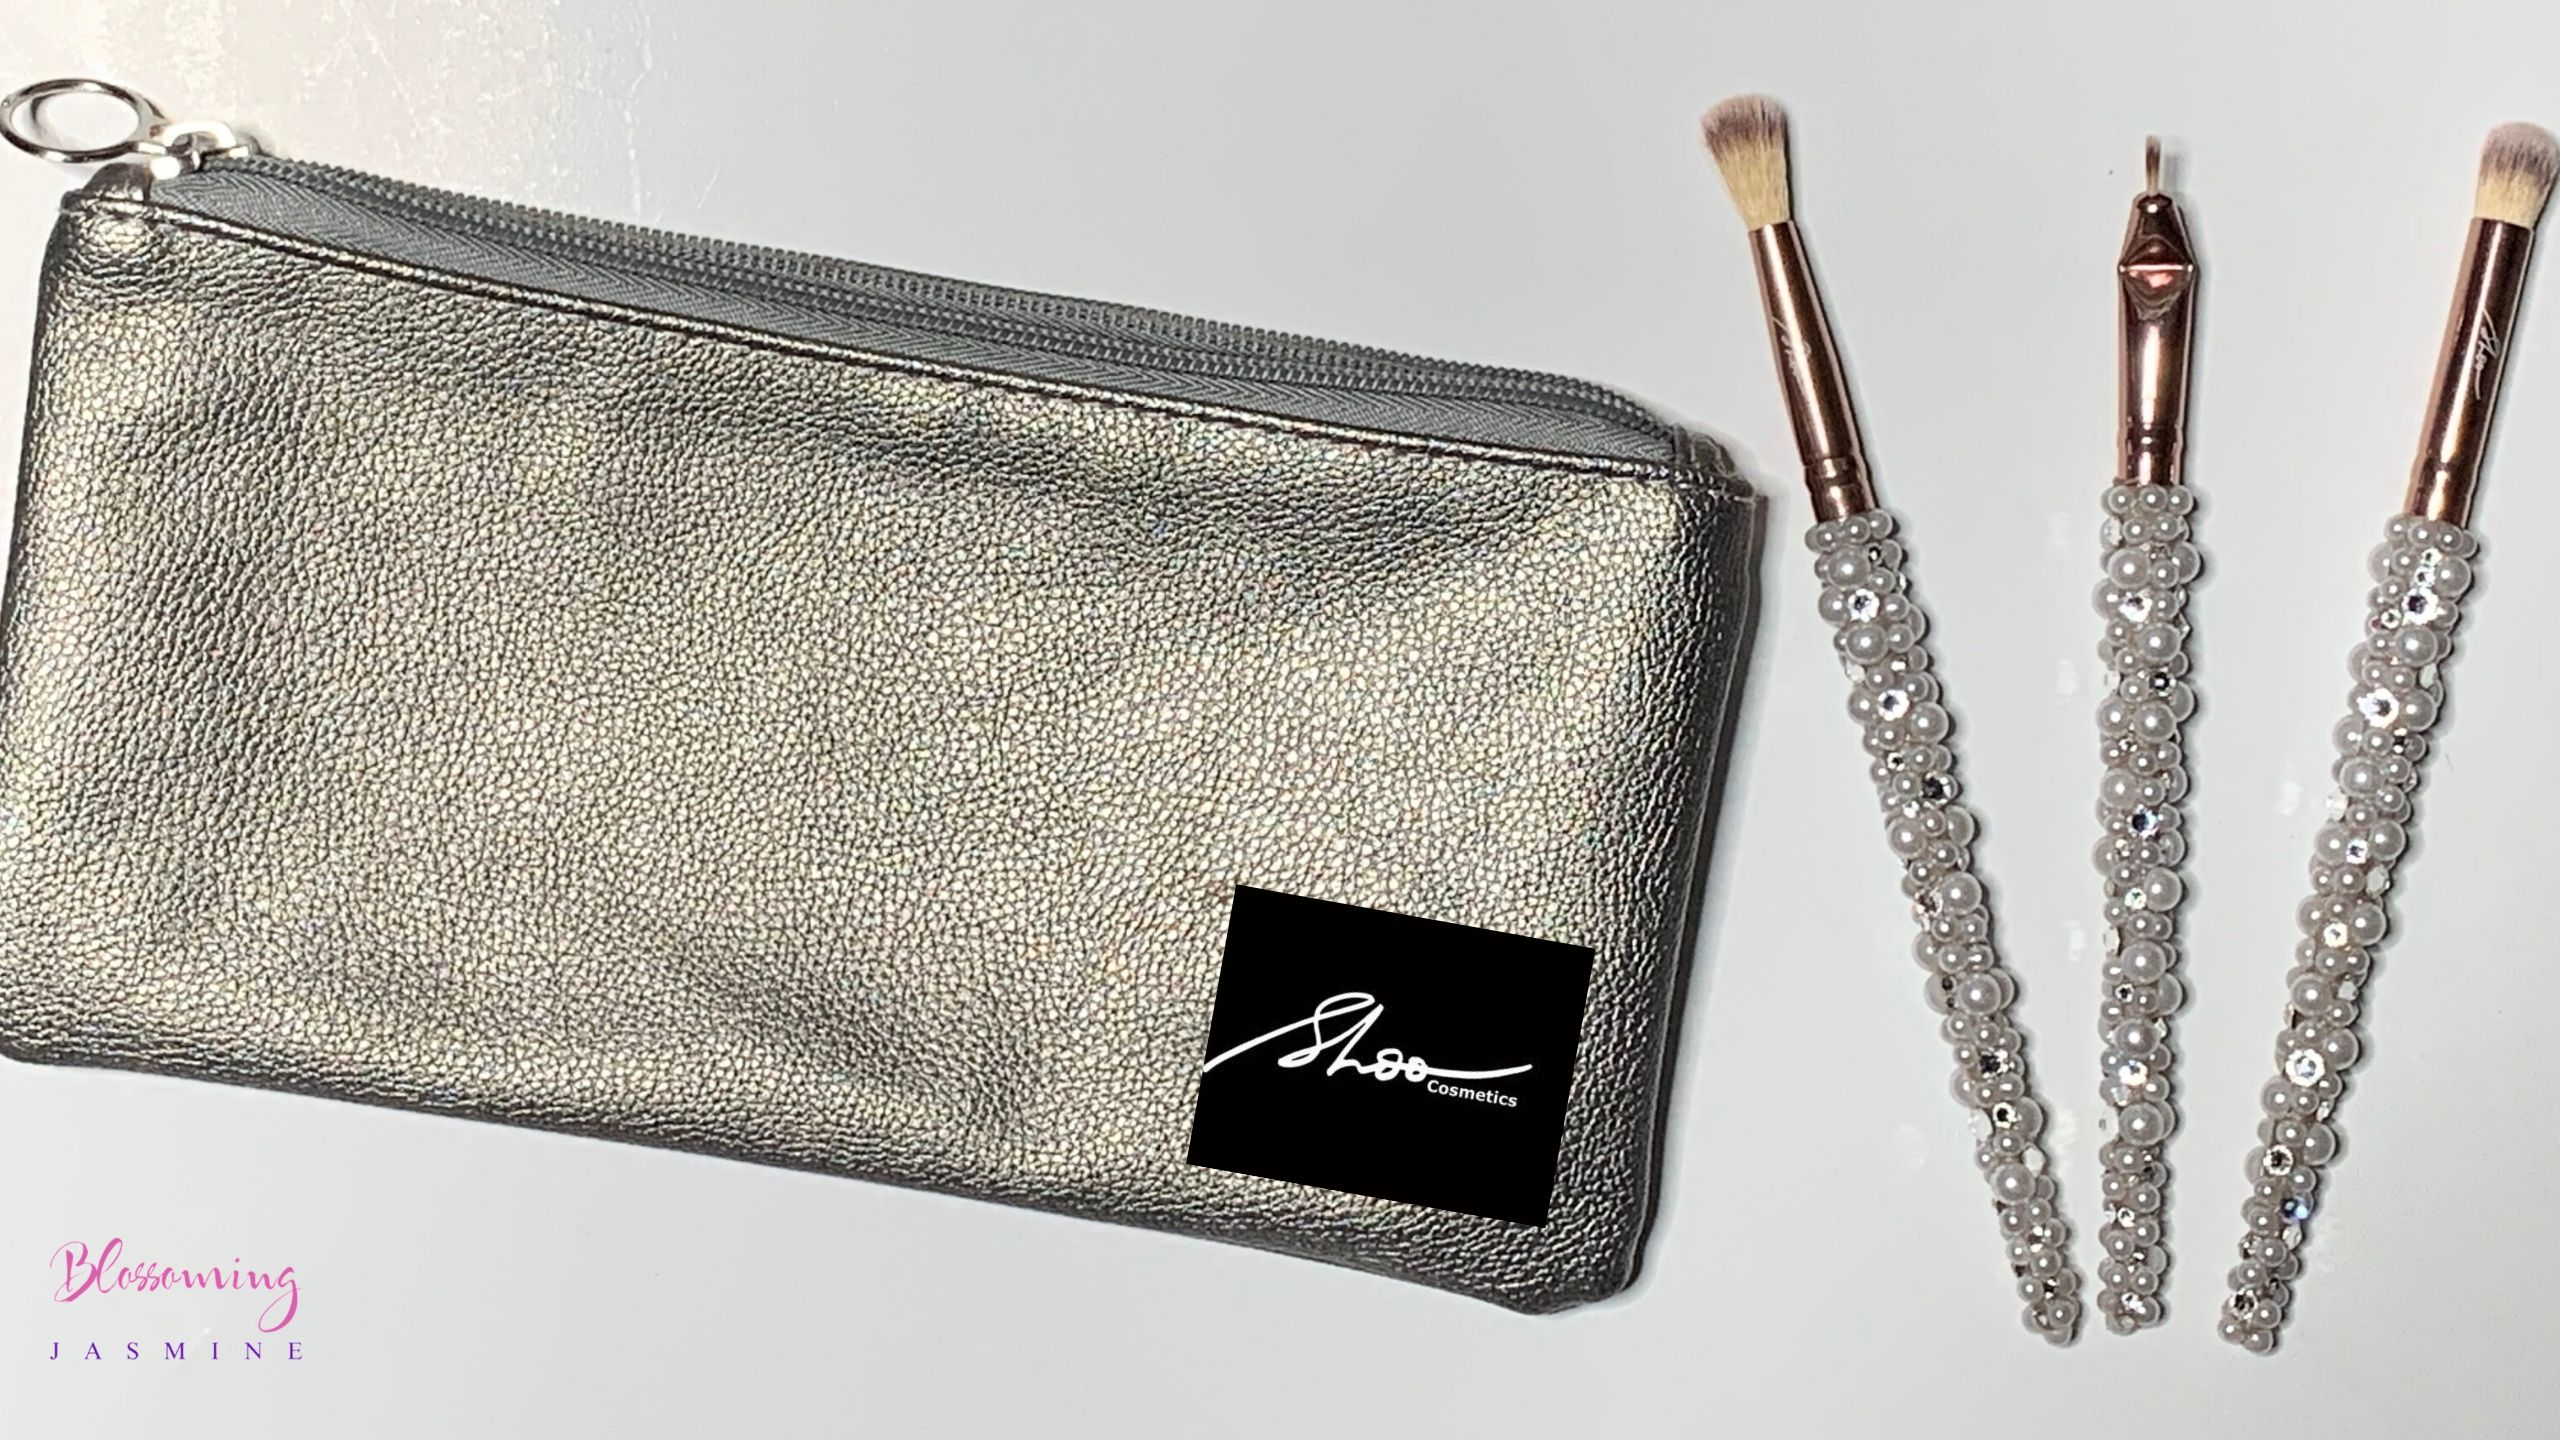 This introductory class will provide you with simple and easy ways to create DIY (do it yourself) crystallized MakeUp Brushes that have a professional finish.